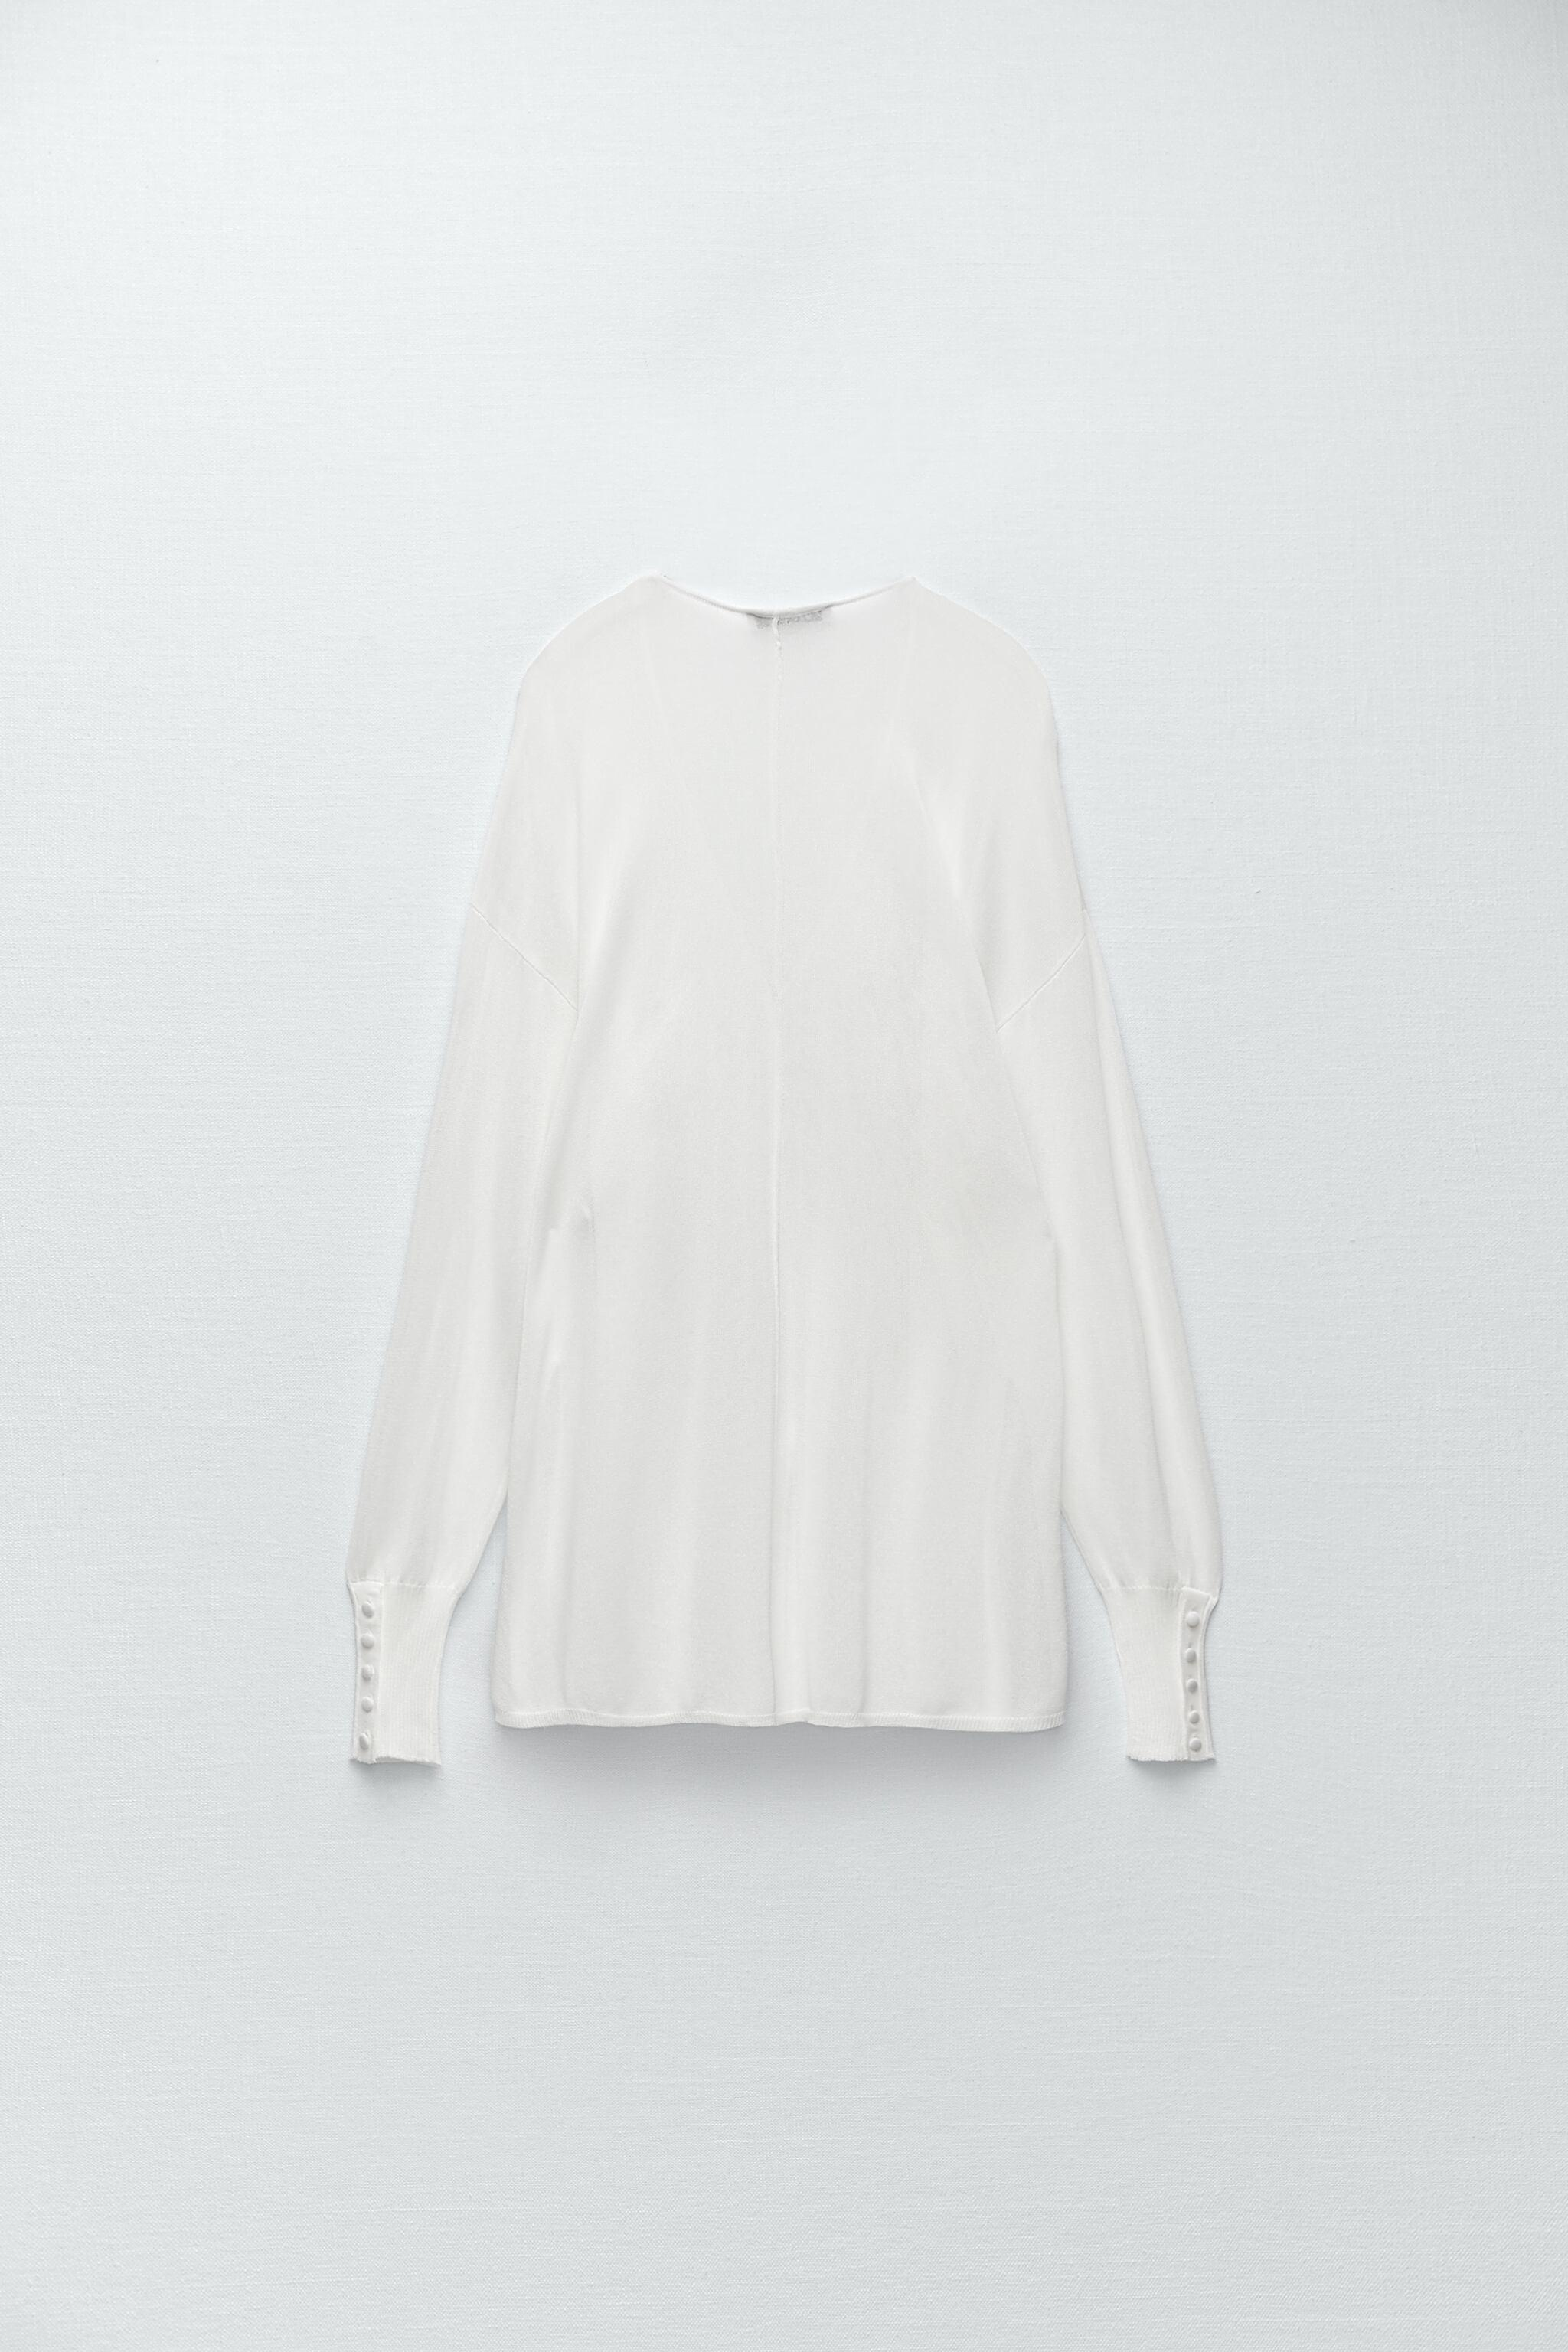 SEMI-SHEER KNIT BLOUSE LIMITED EDITION 5